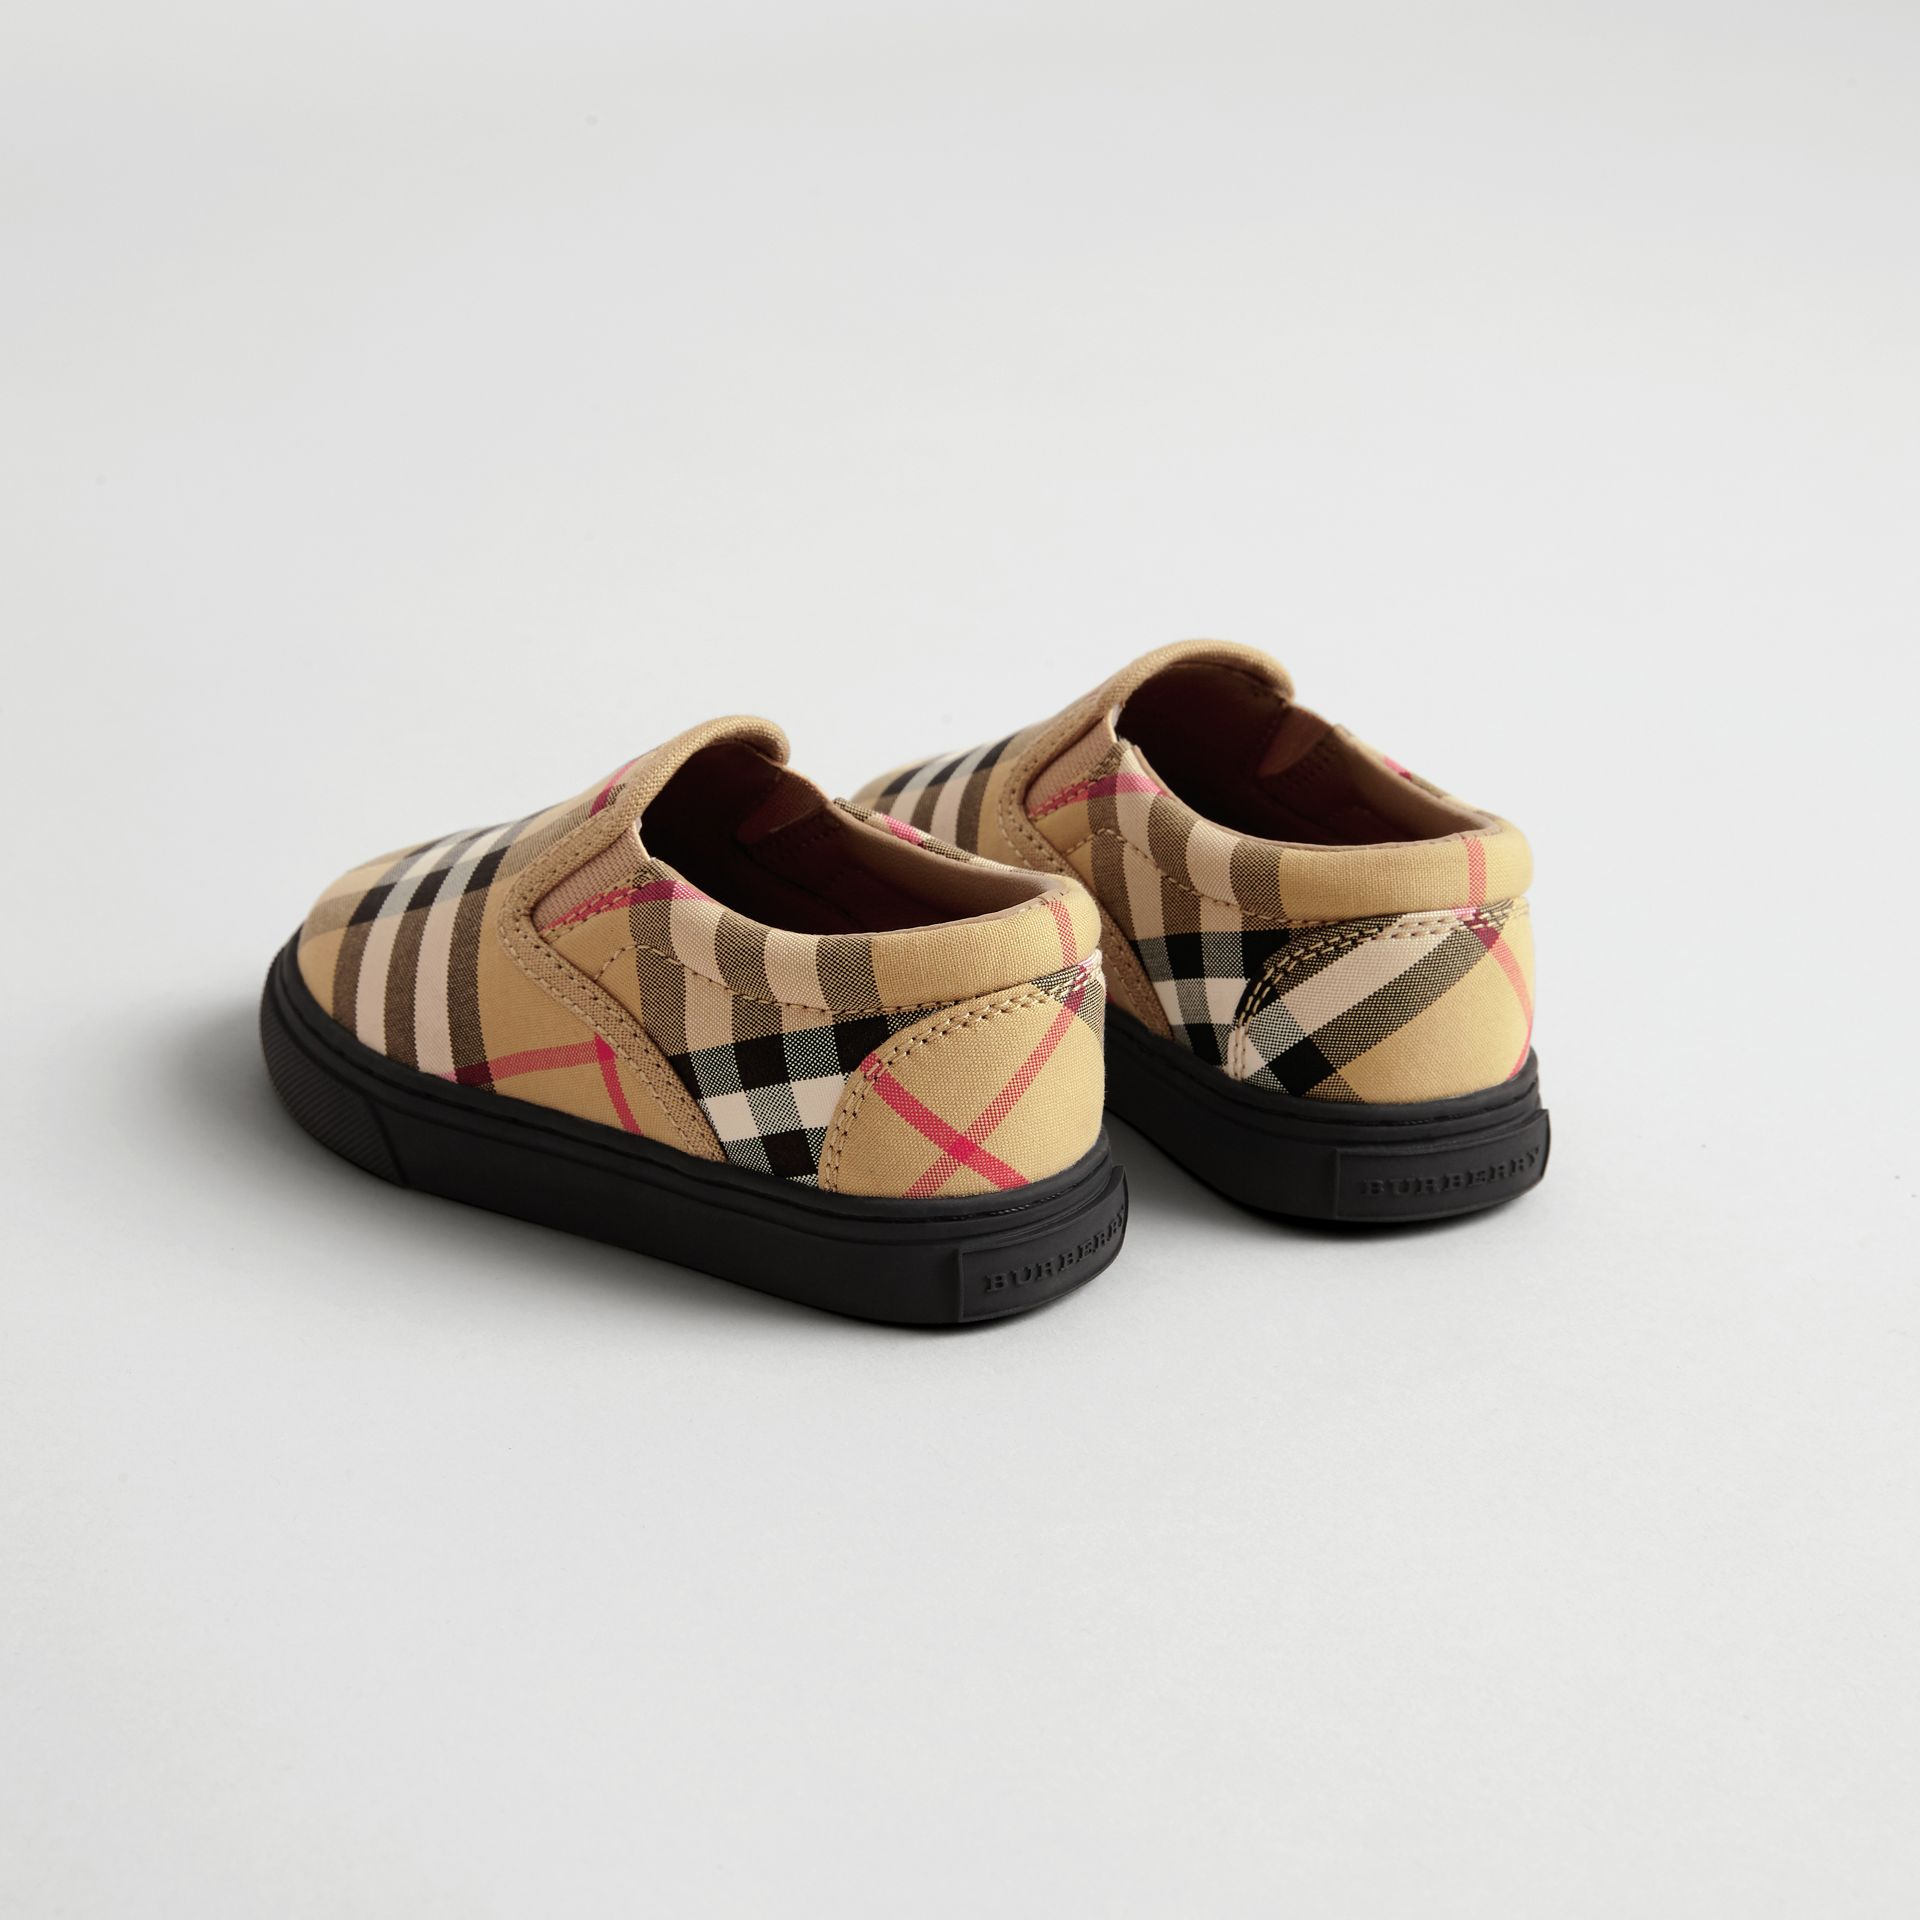 Sneakers sans lacets en cuir à motif Vintage check (Jaune Antique/noir) - Enfant | Burberry Canada - photo de la galerie 2